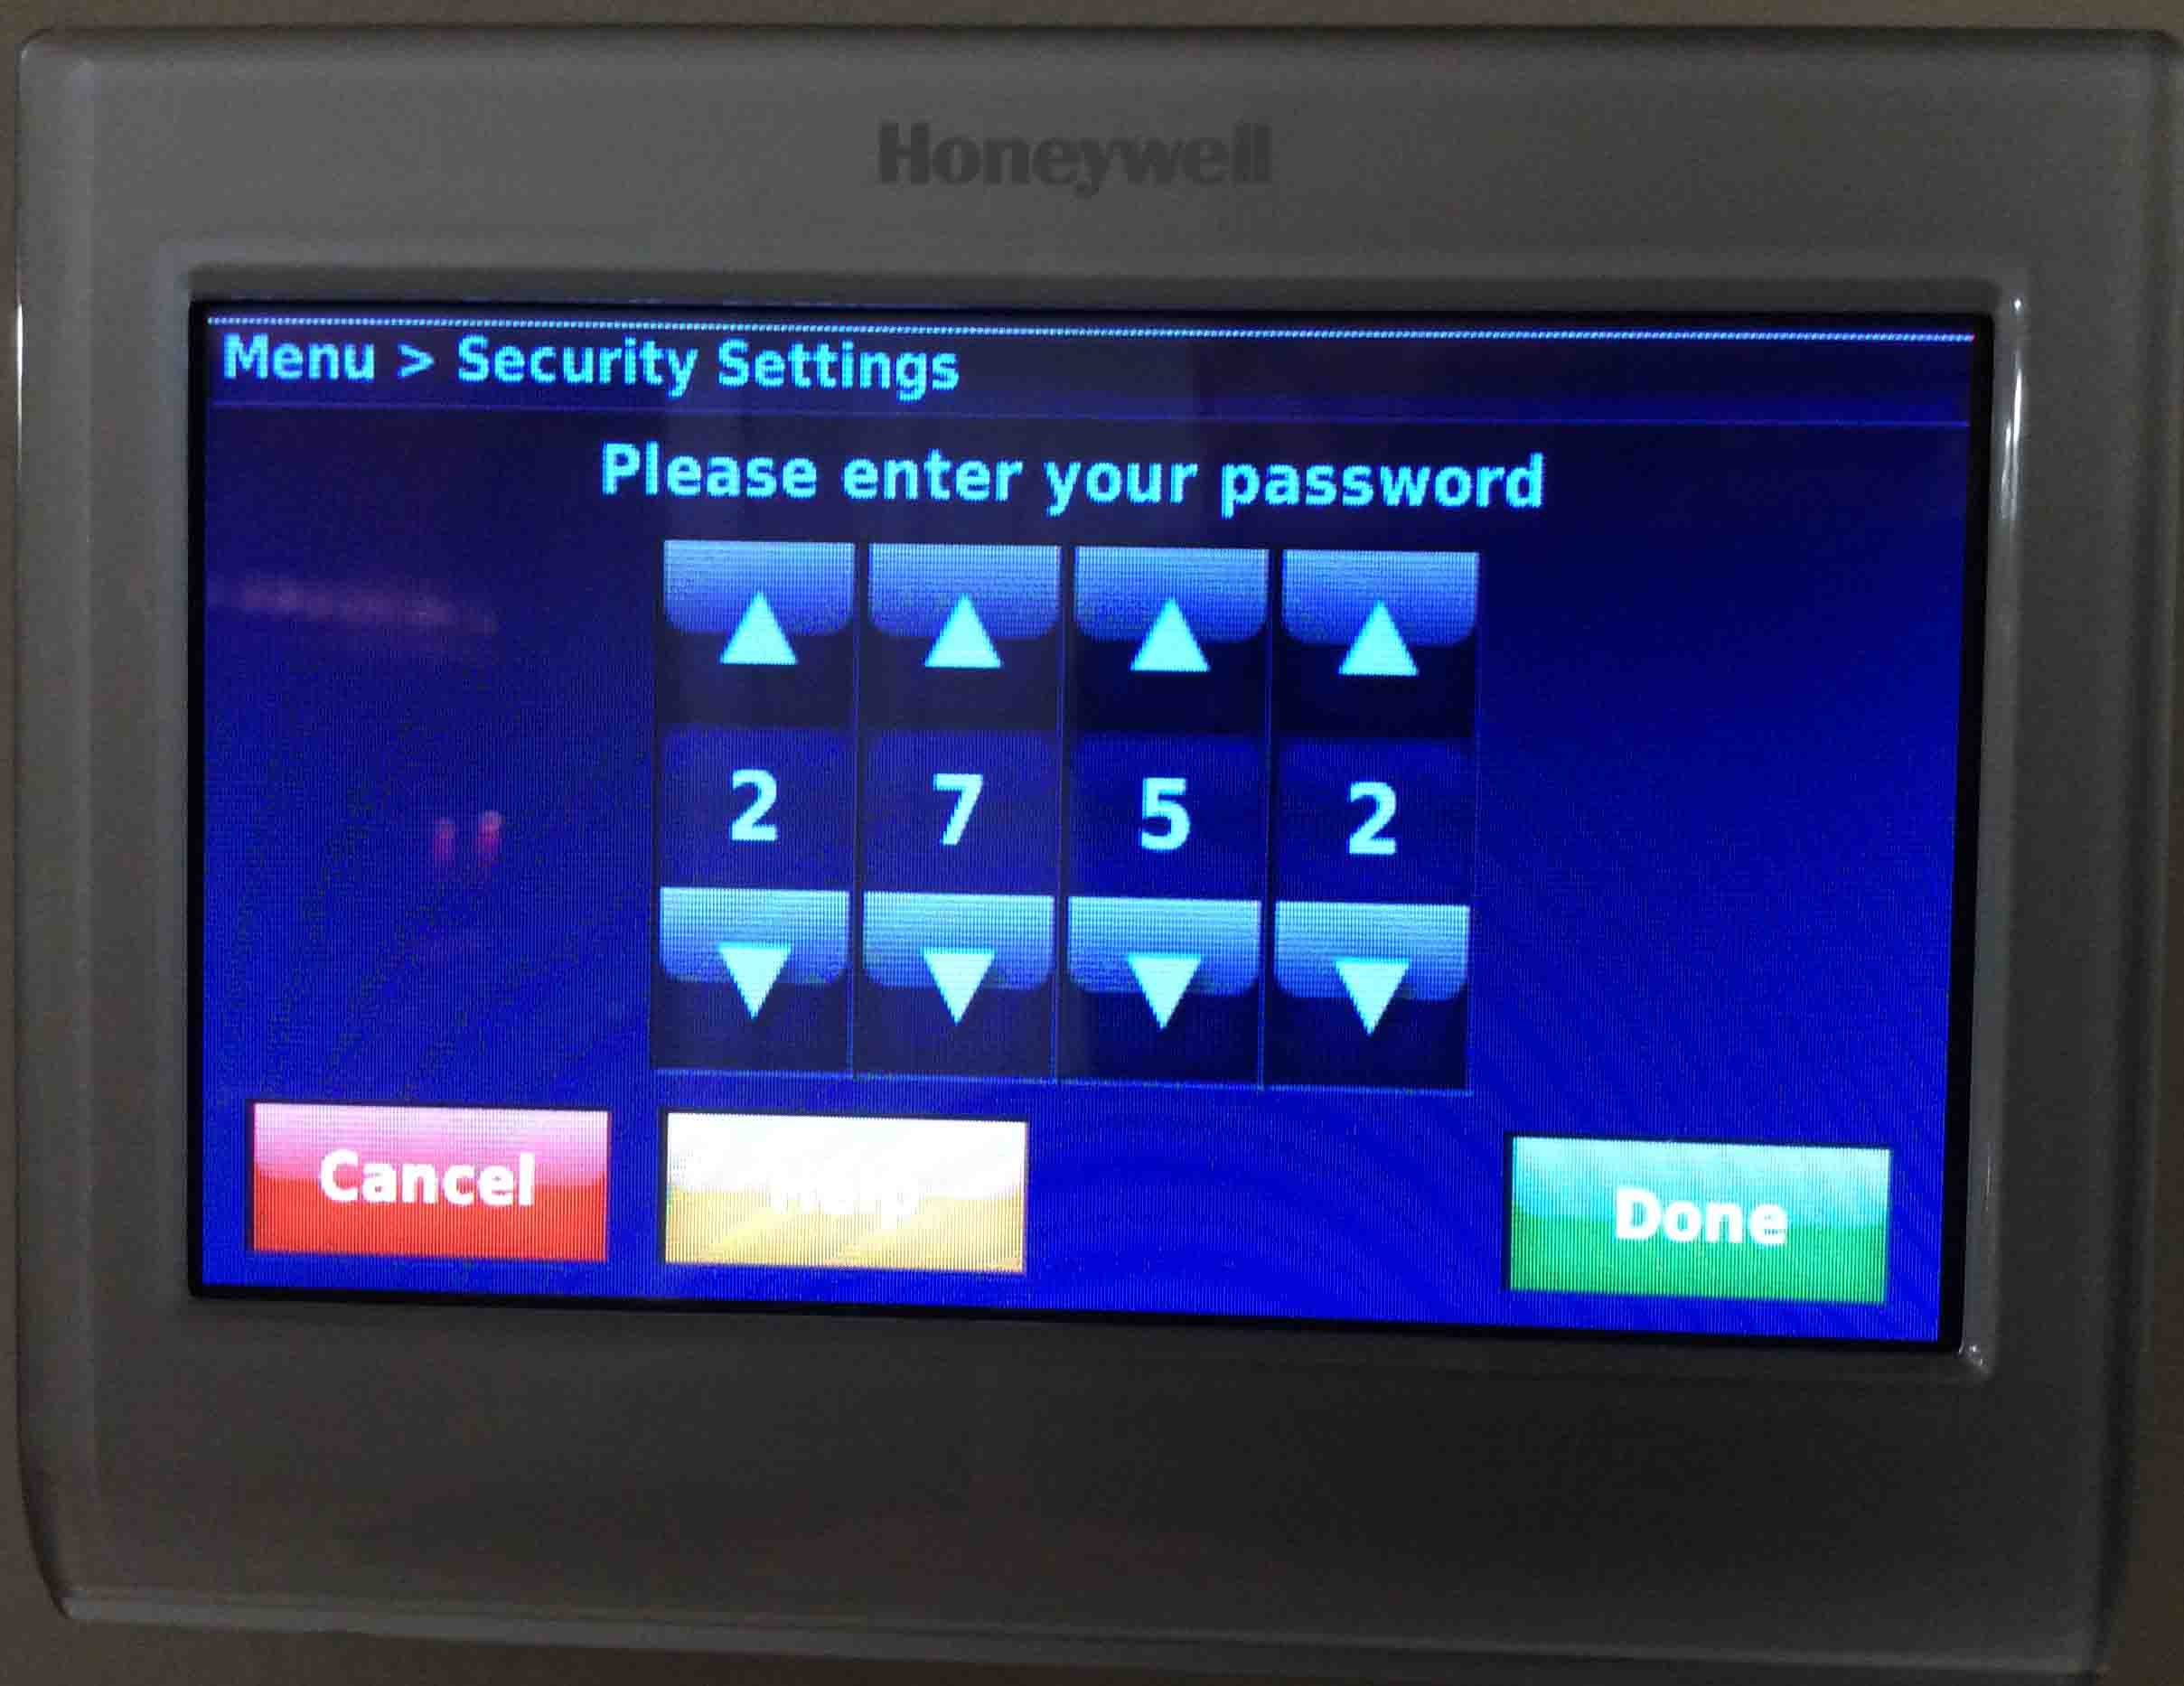 Honeywell Thermostat Troubleshooting Codes Today Manual Guide Heat Pump Unlock Screen On Wiring Color Code